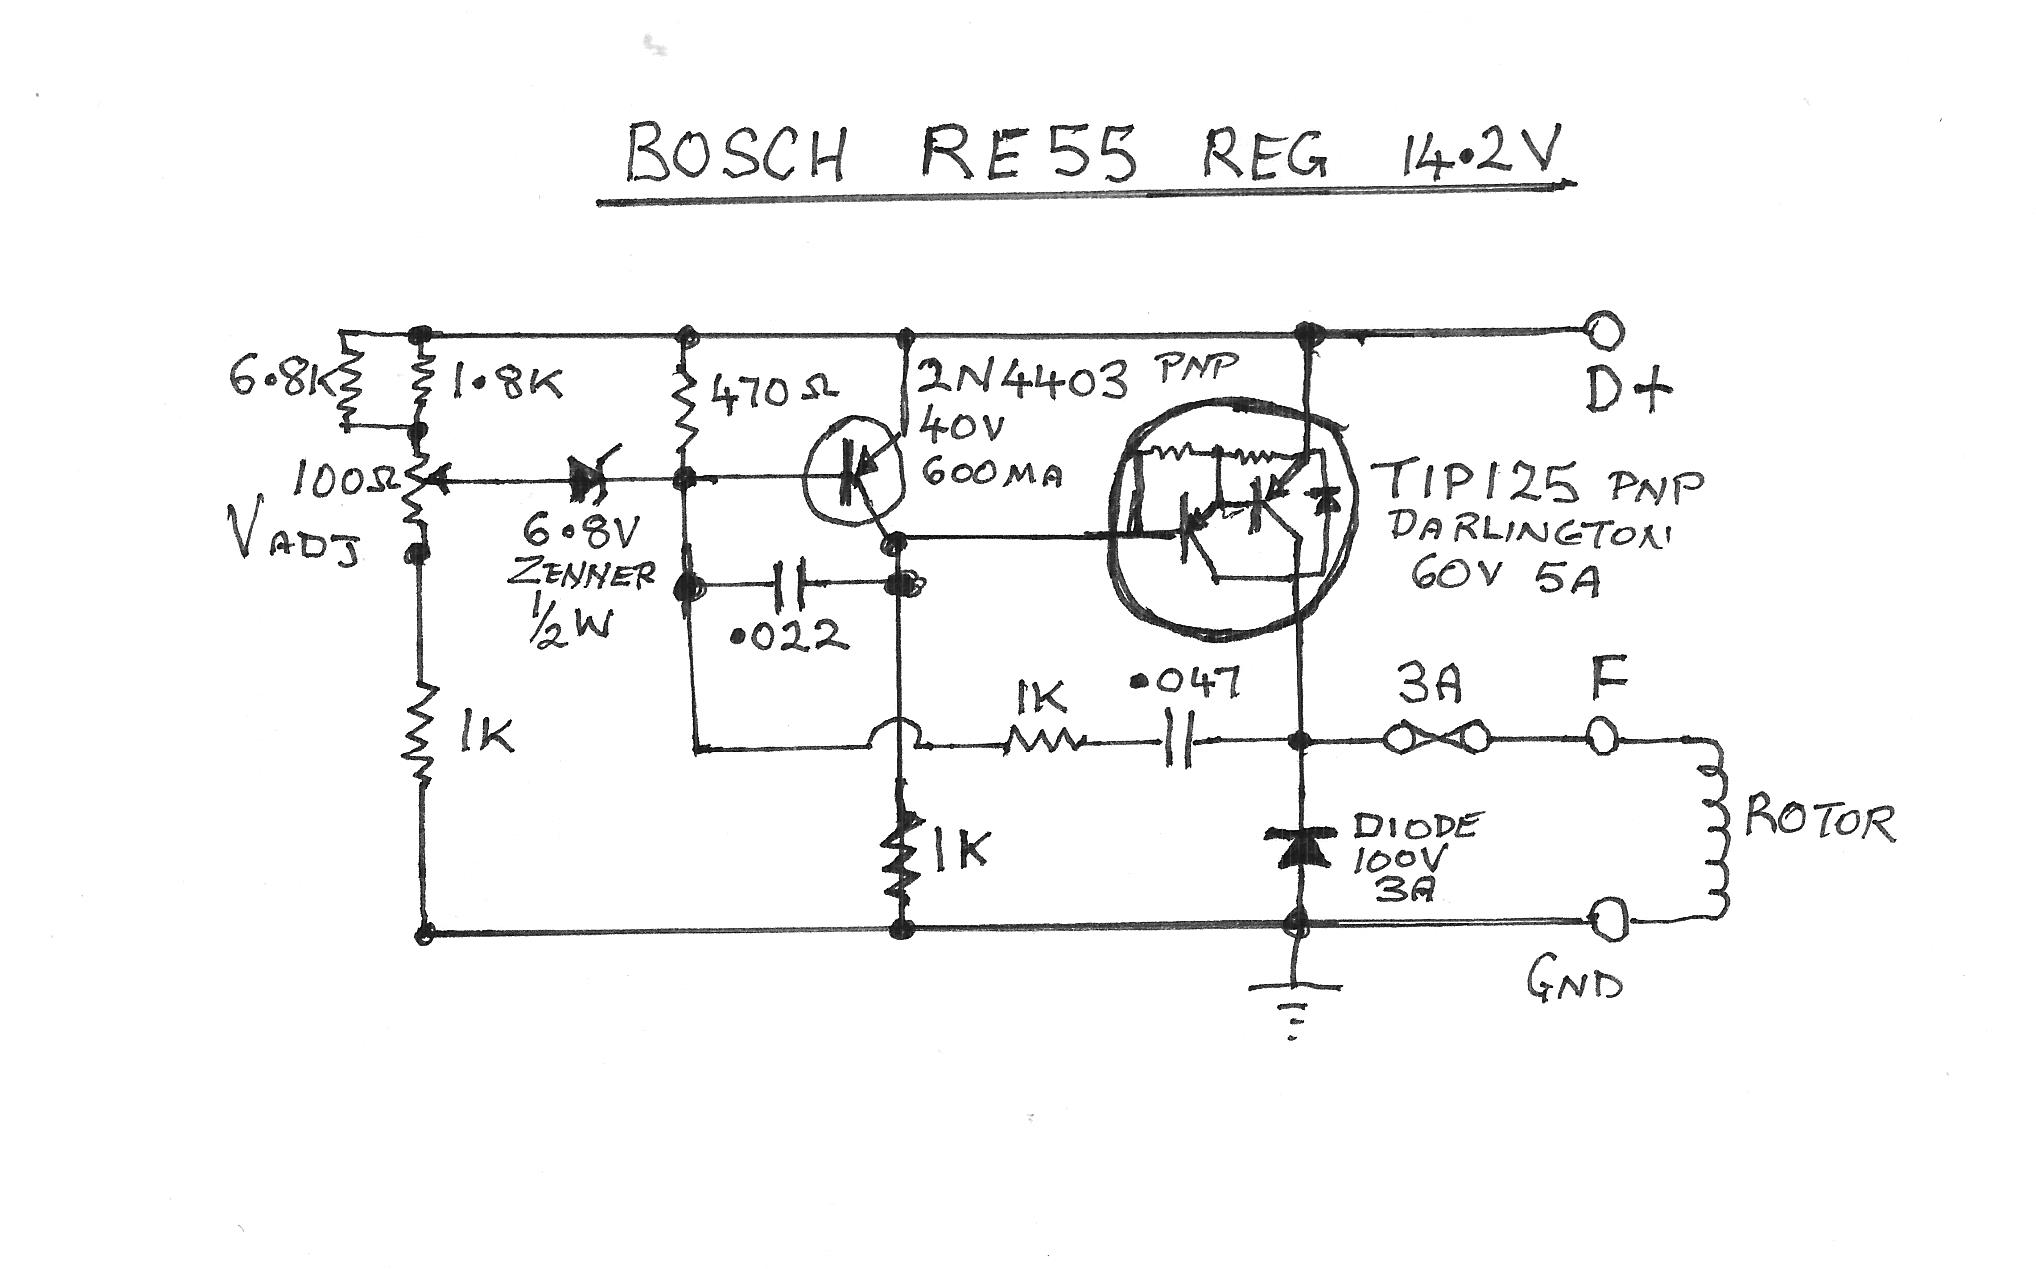 alternator exciter wire light page 2 electronics forum bosch re55 reg circ jpg